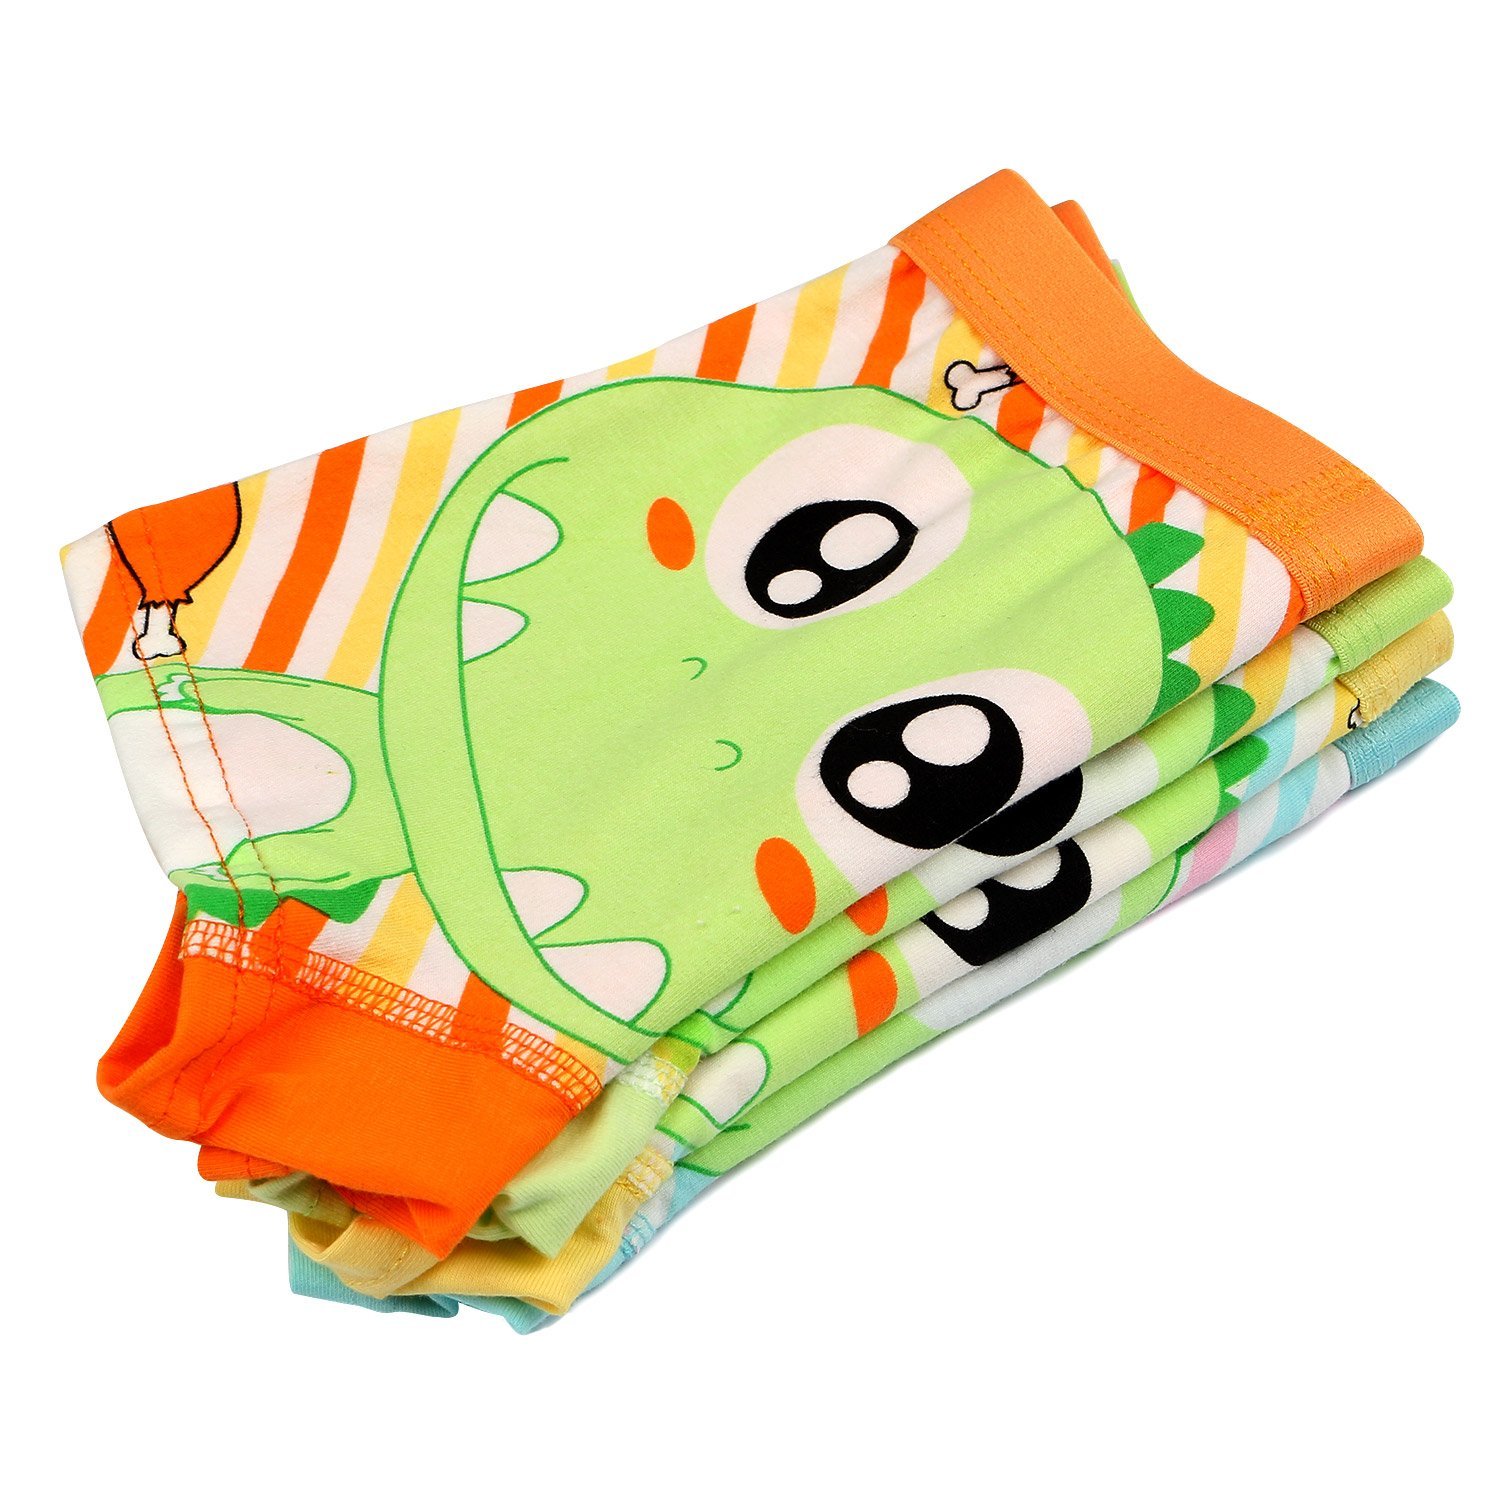 BOOPH Little Boys Underwear, Cotton Dinosaur Baby Toddler Boxer Briefs Underpant for Boy 4-6 Years (Pack of 4) by BOOPH (Image #5)